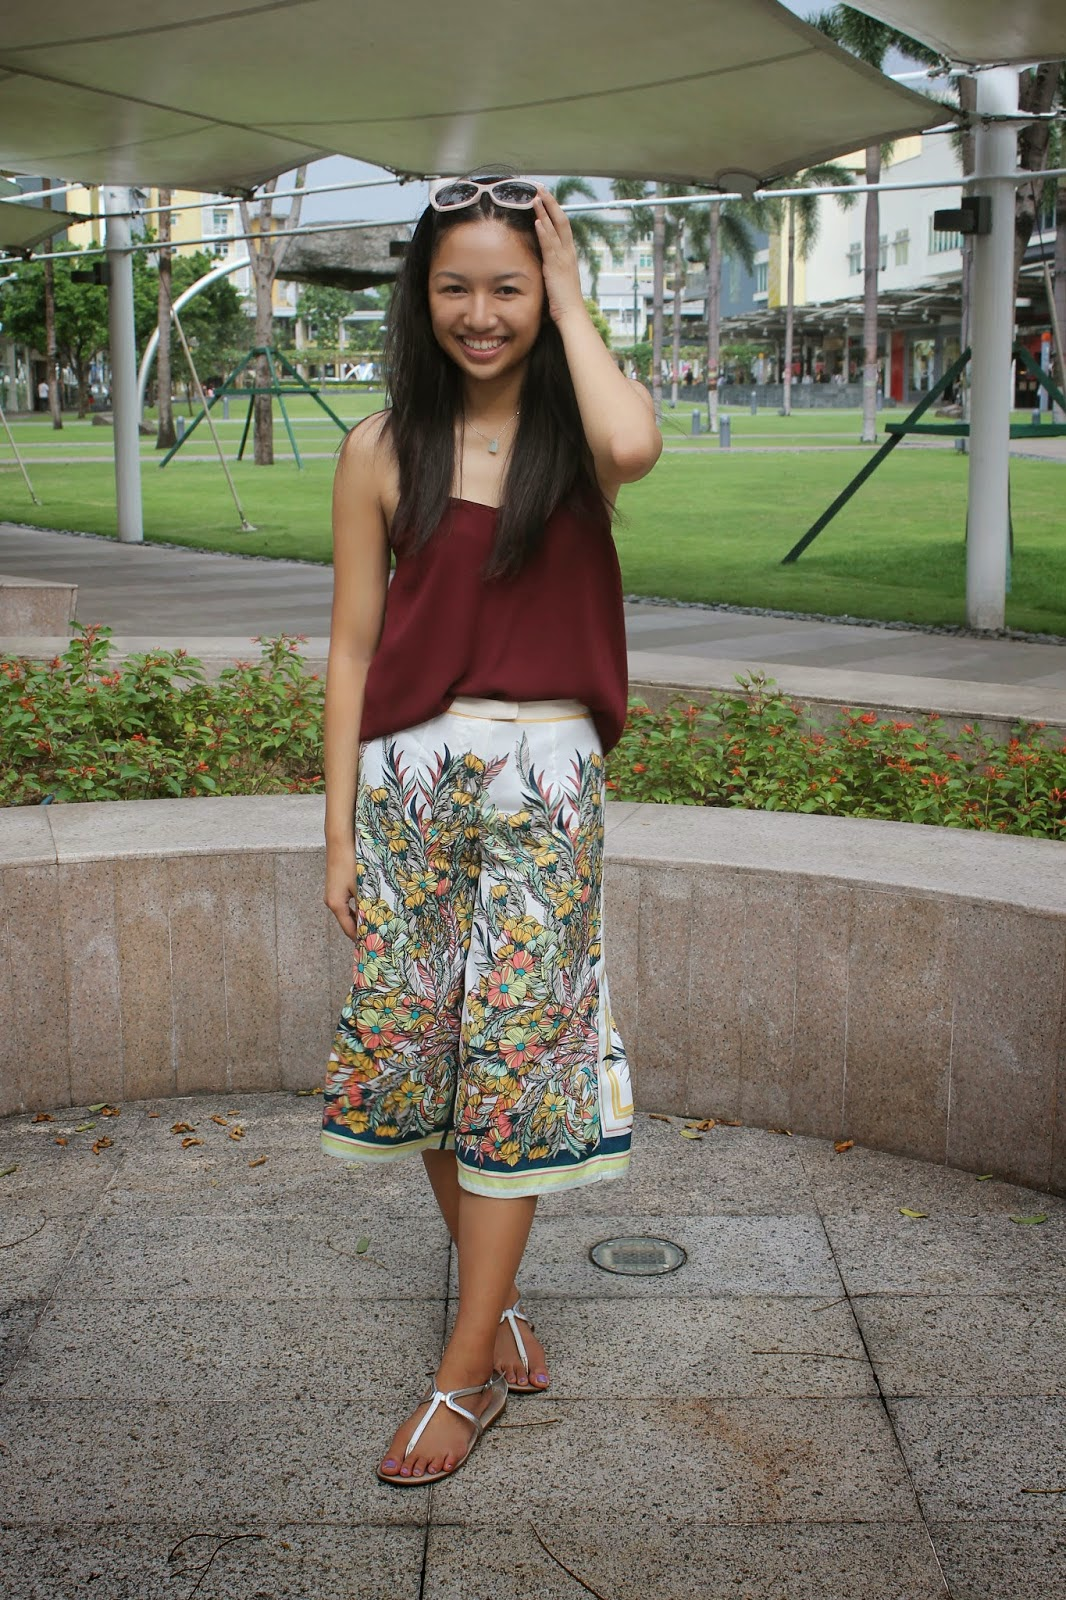 fashion: new kids on the blog (fashion & lifestyle blog launch, outfits for the fort)